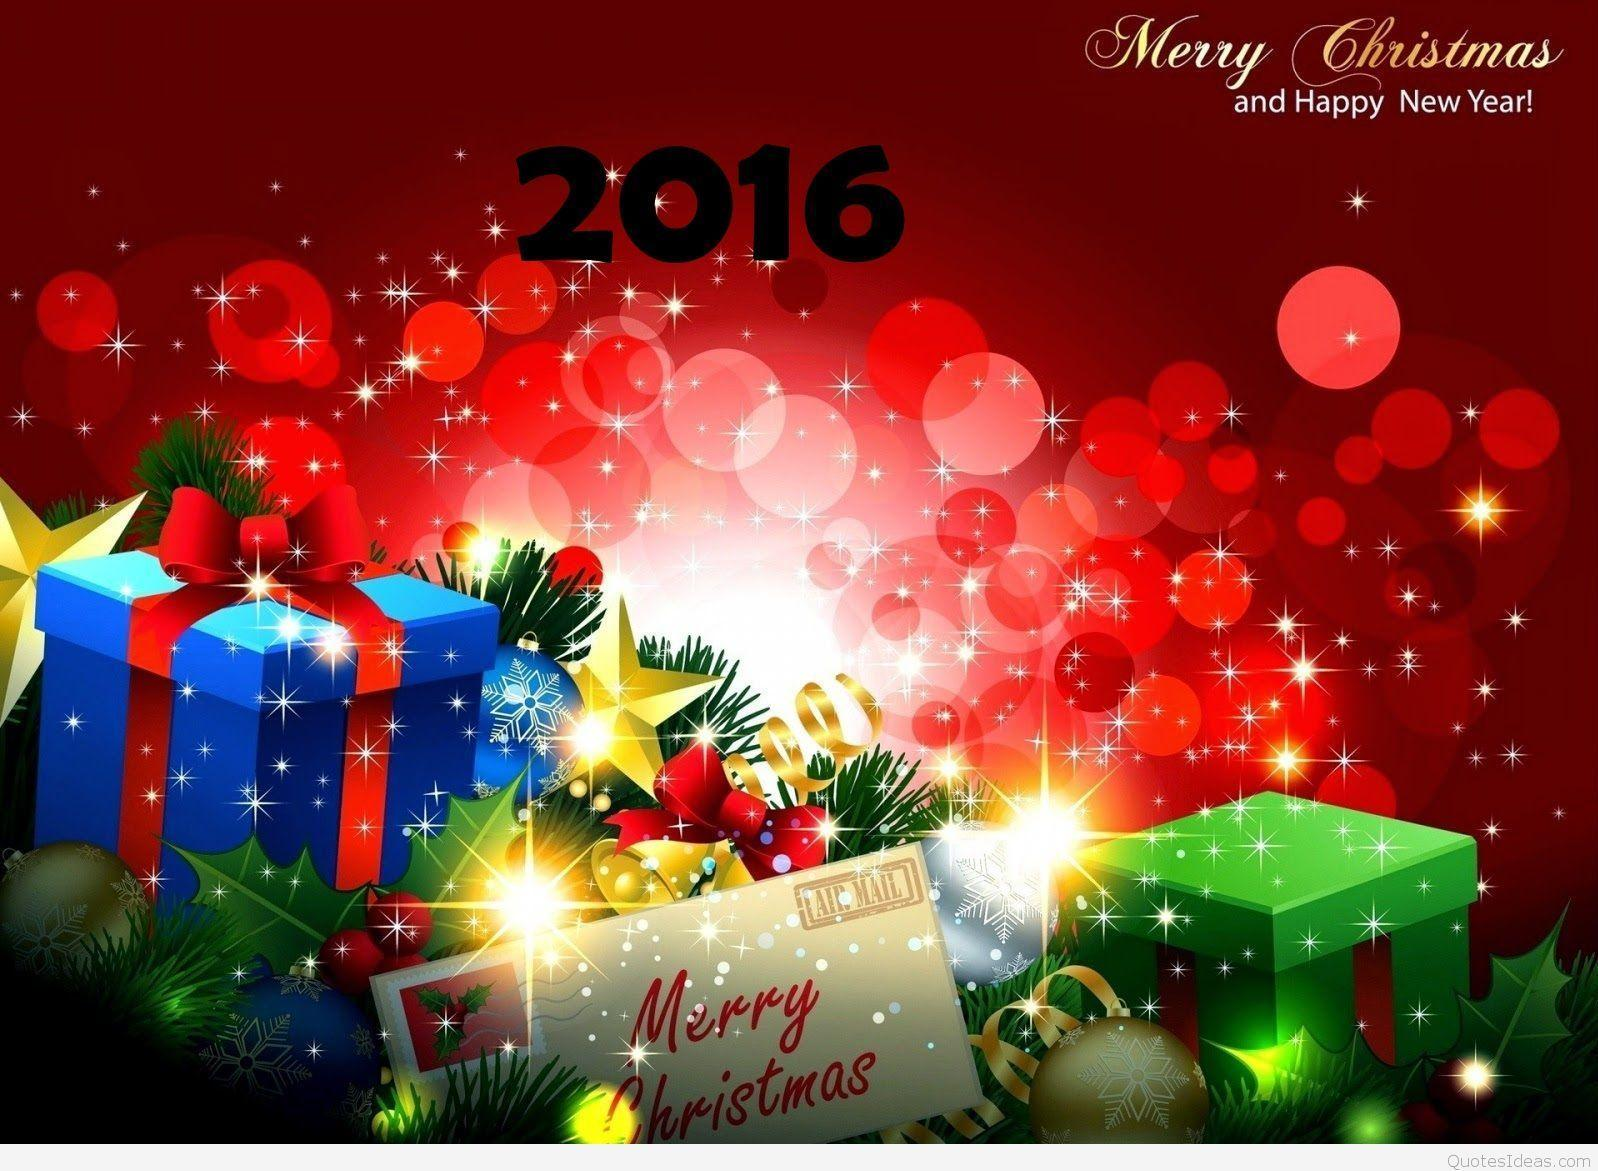 Merry Christmas 2016 Wallpapers - Wallpaper Cave